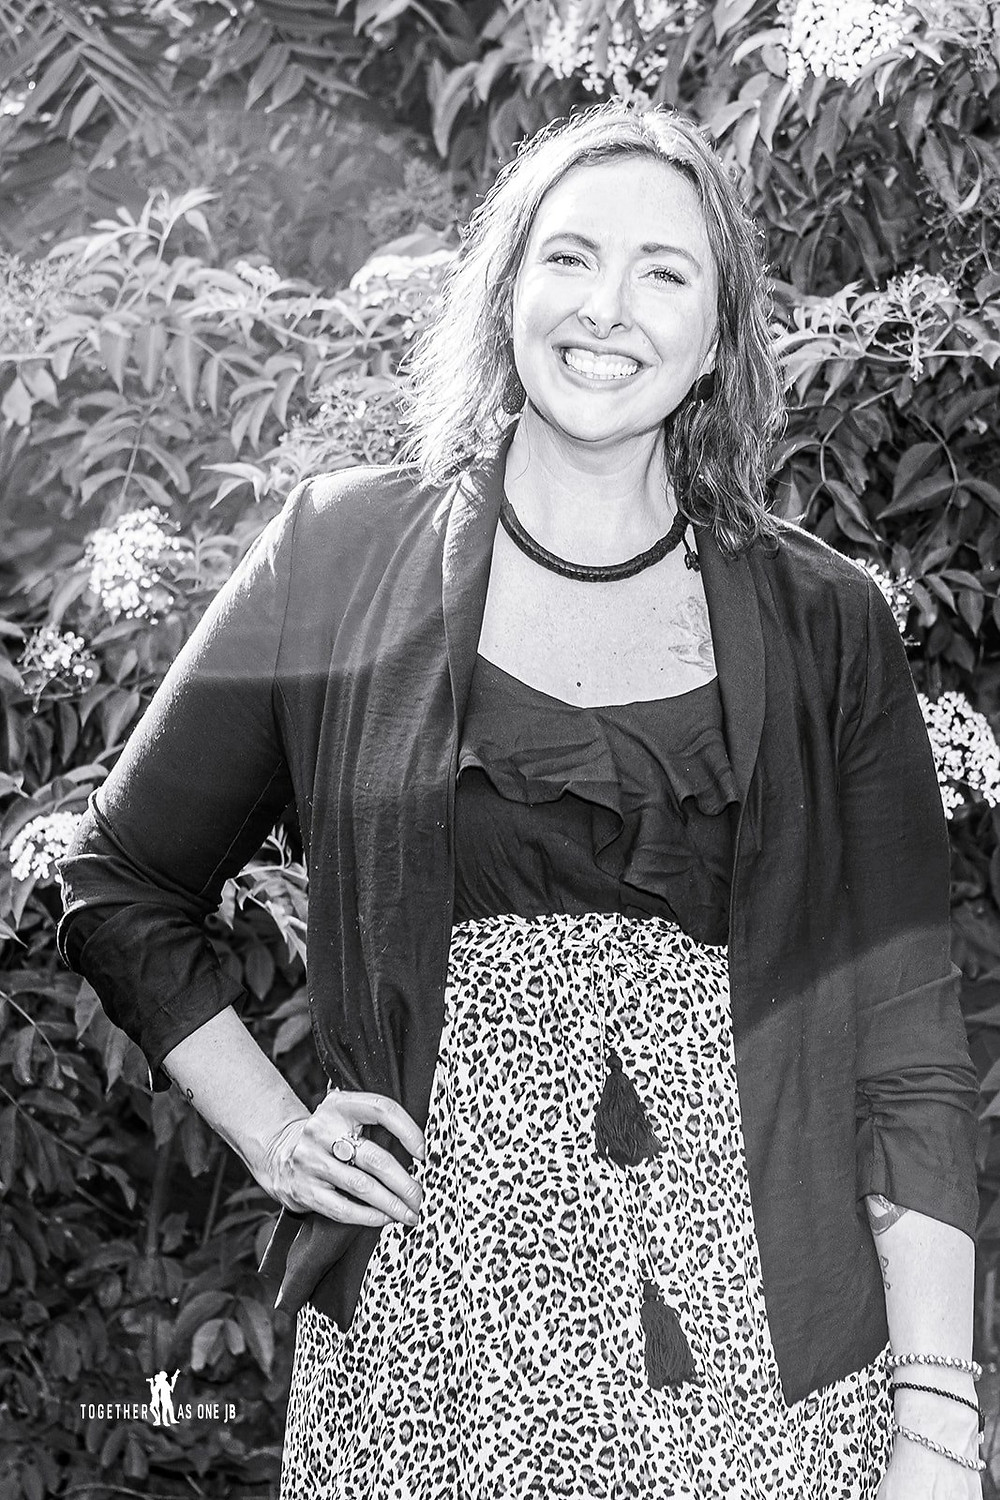 Cincinnati family photographer captures black and white portrait of smiling woman in yard.